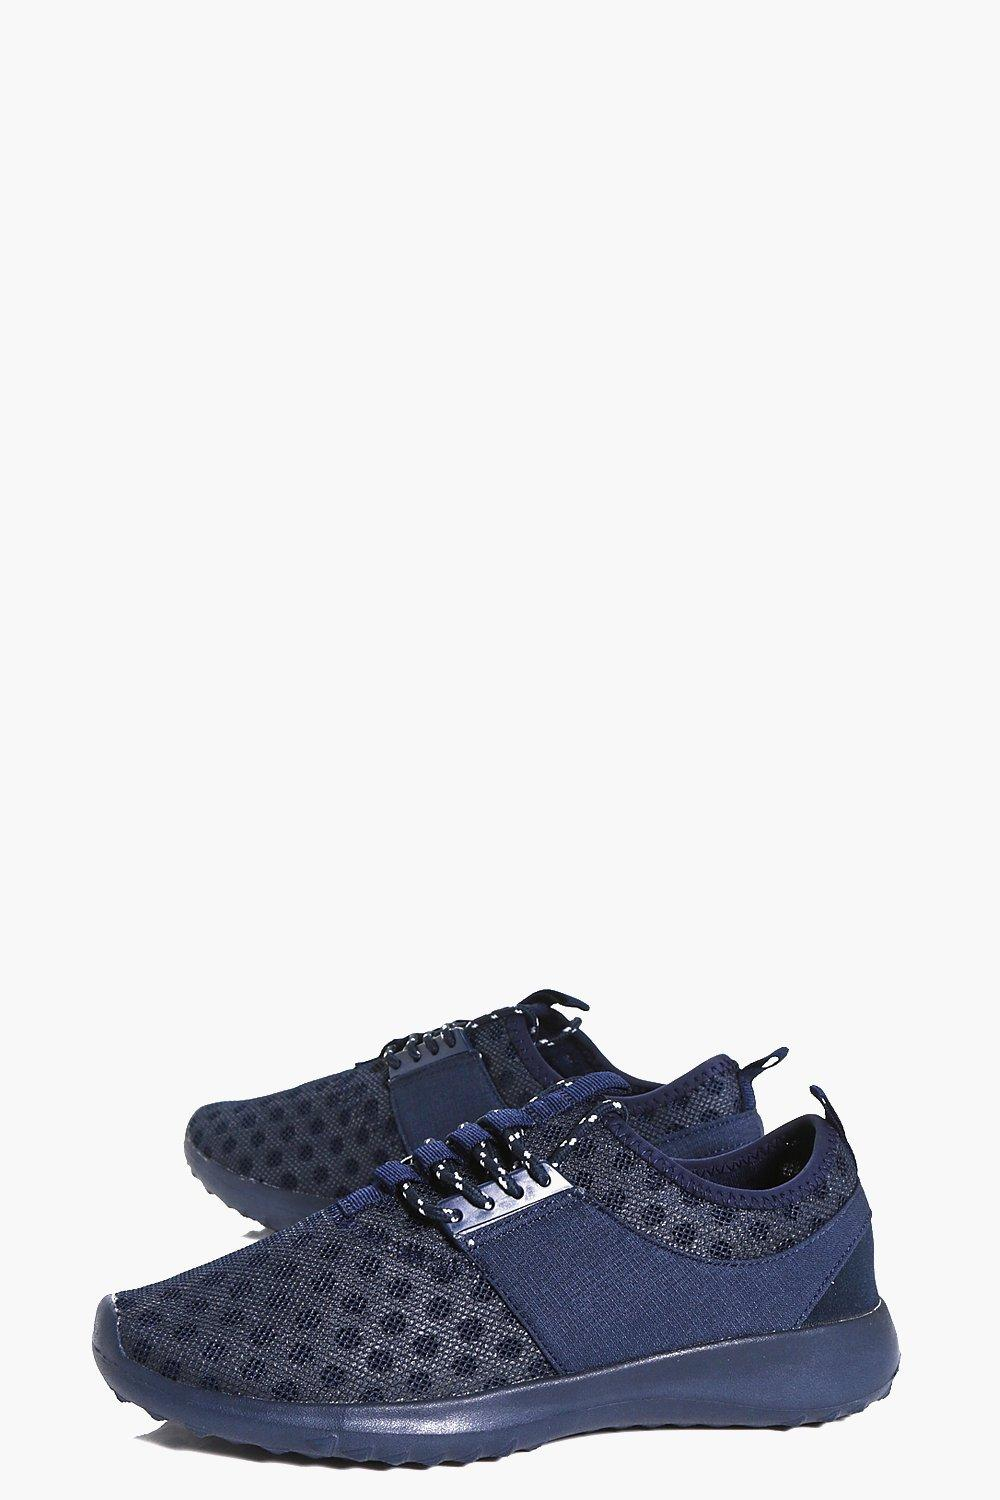 Boohoo Denim Lilly Polka Mesh Lace Up Trainer in Navy (Blue)